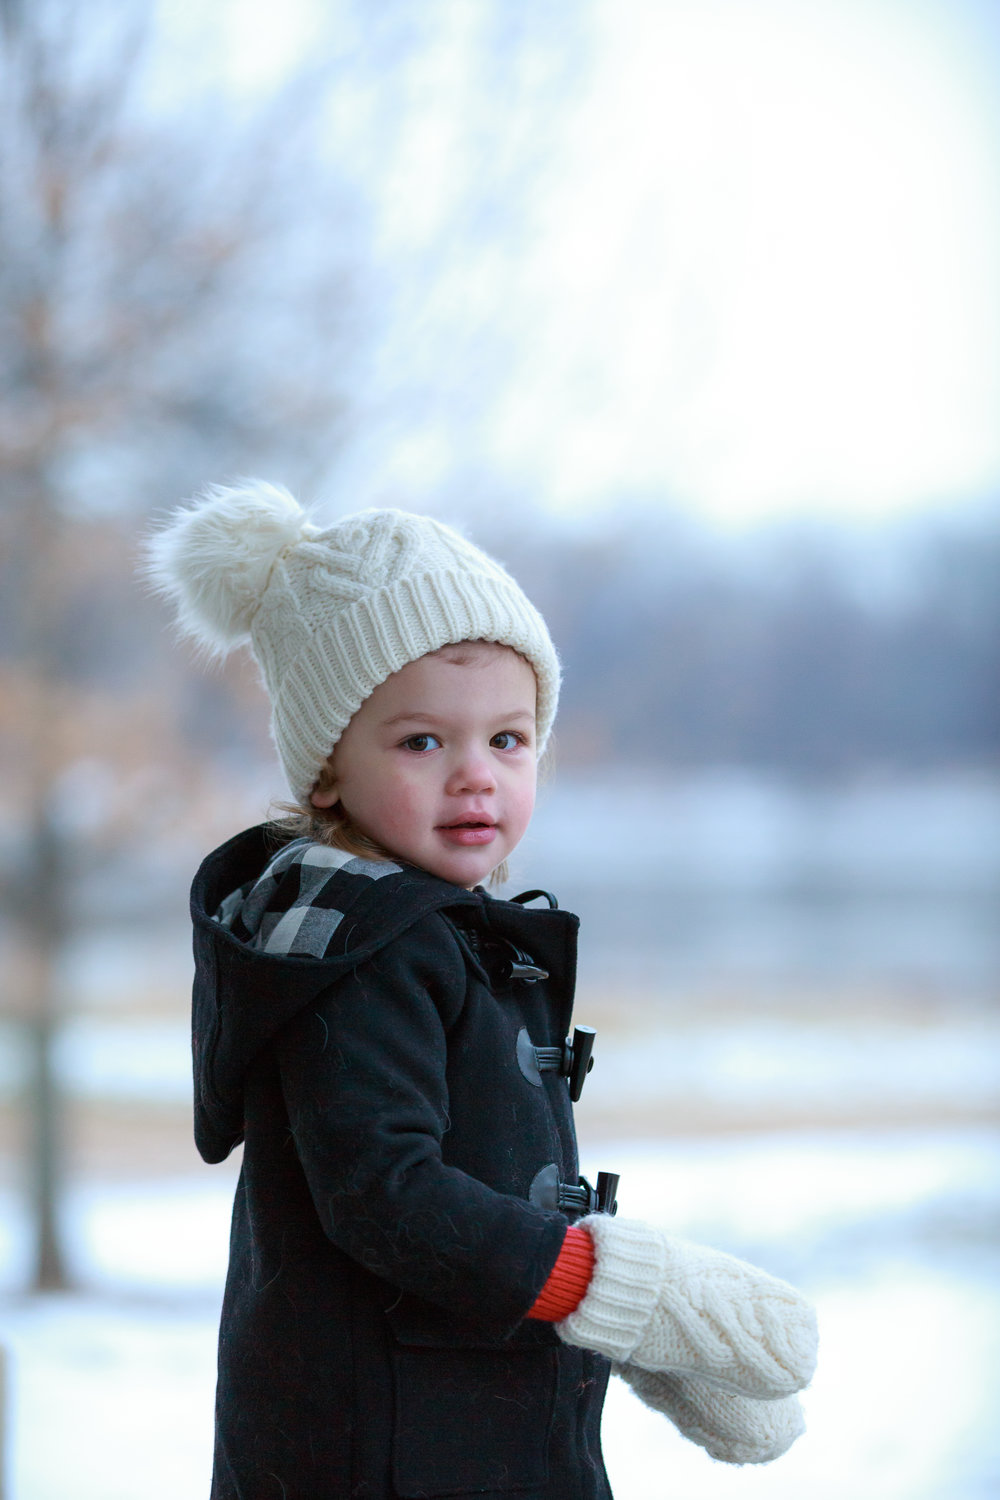 Young girl wearing knit hat and peacoat and mittens enjoying a winter afternoon in St. Charles, Missouri near the river.